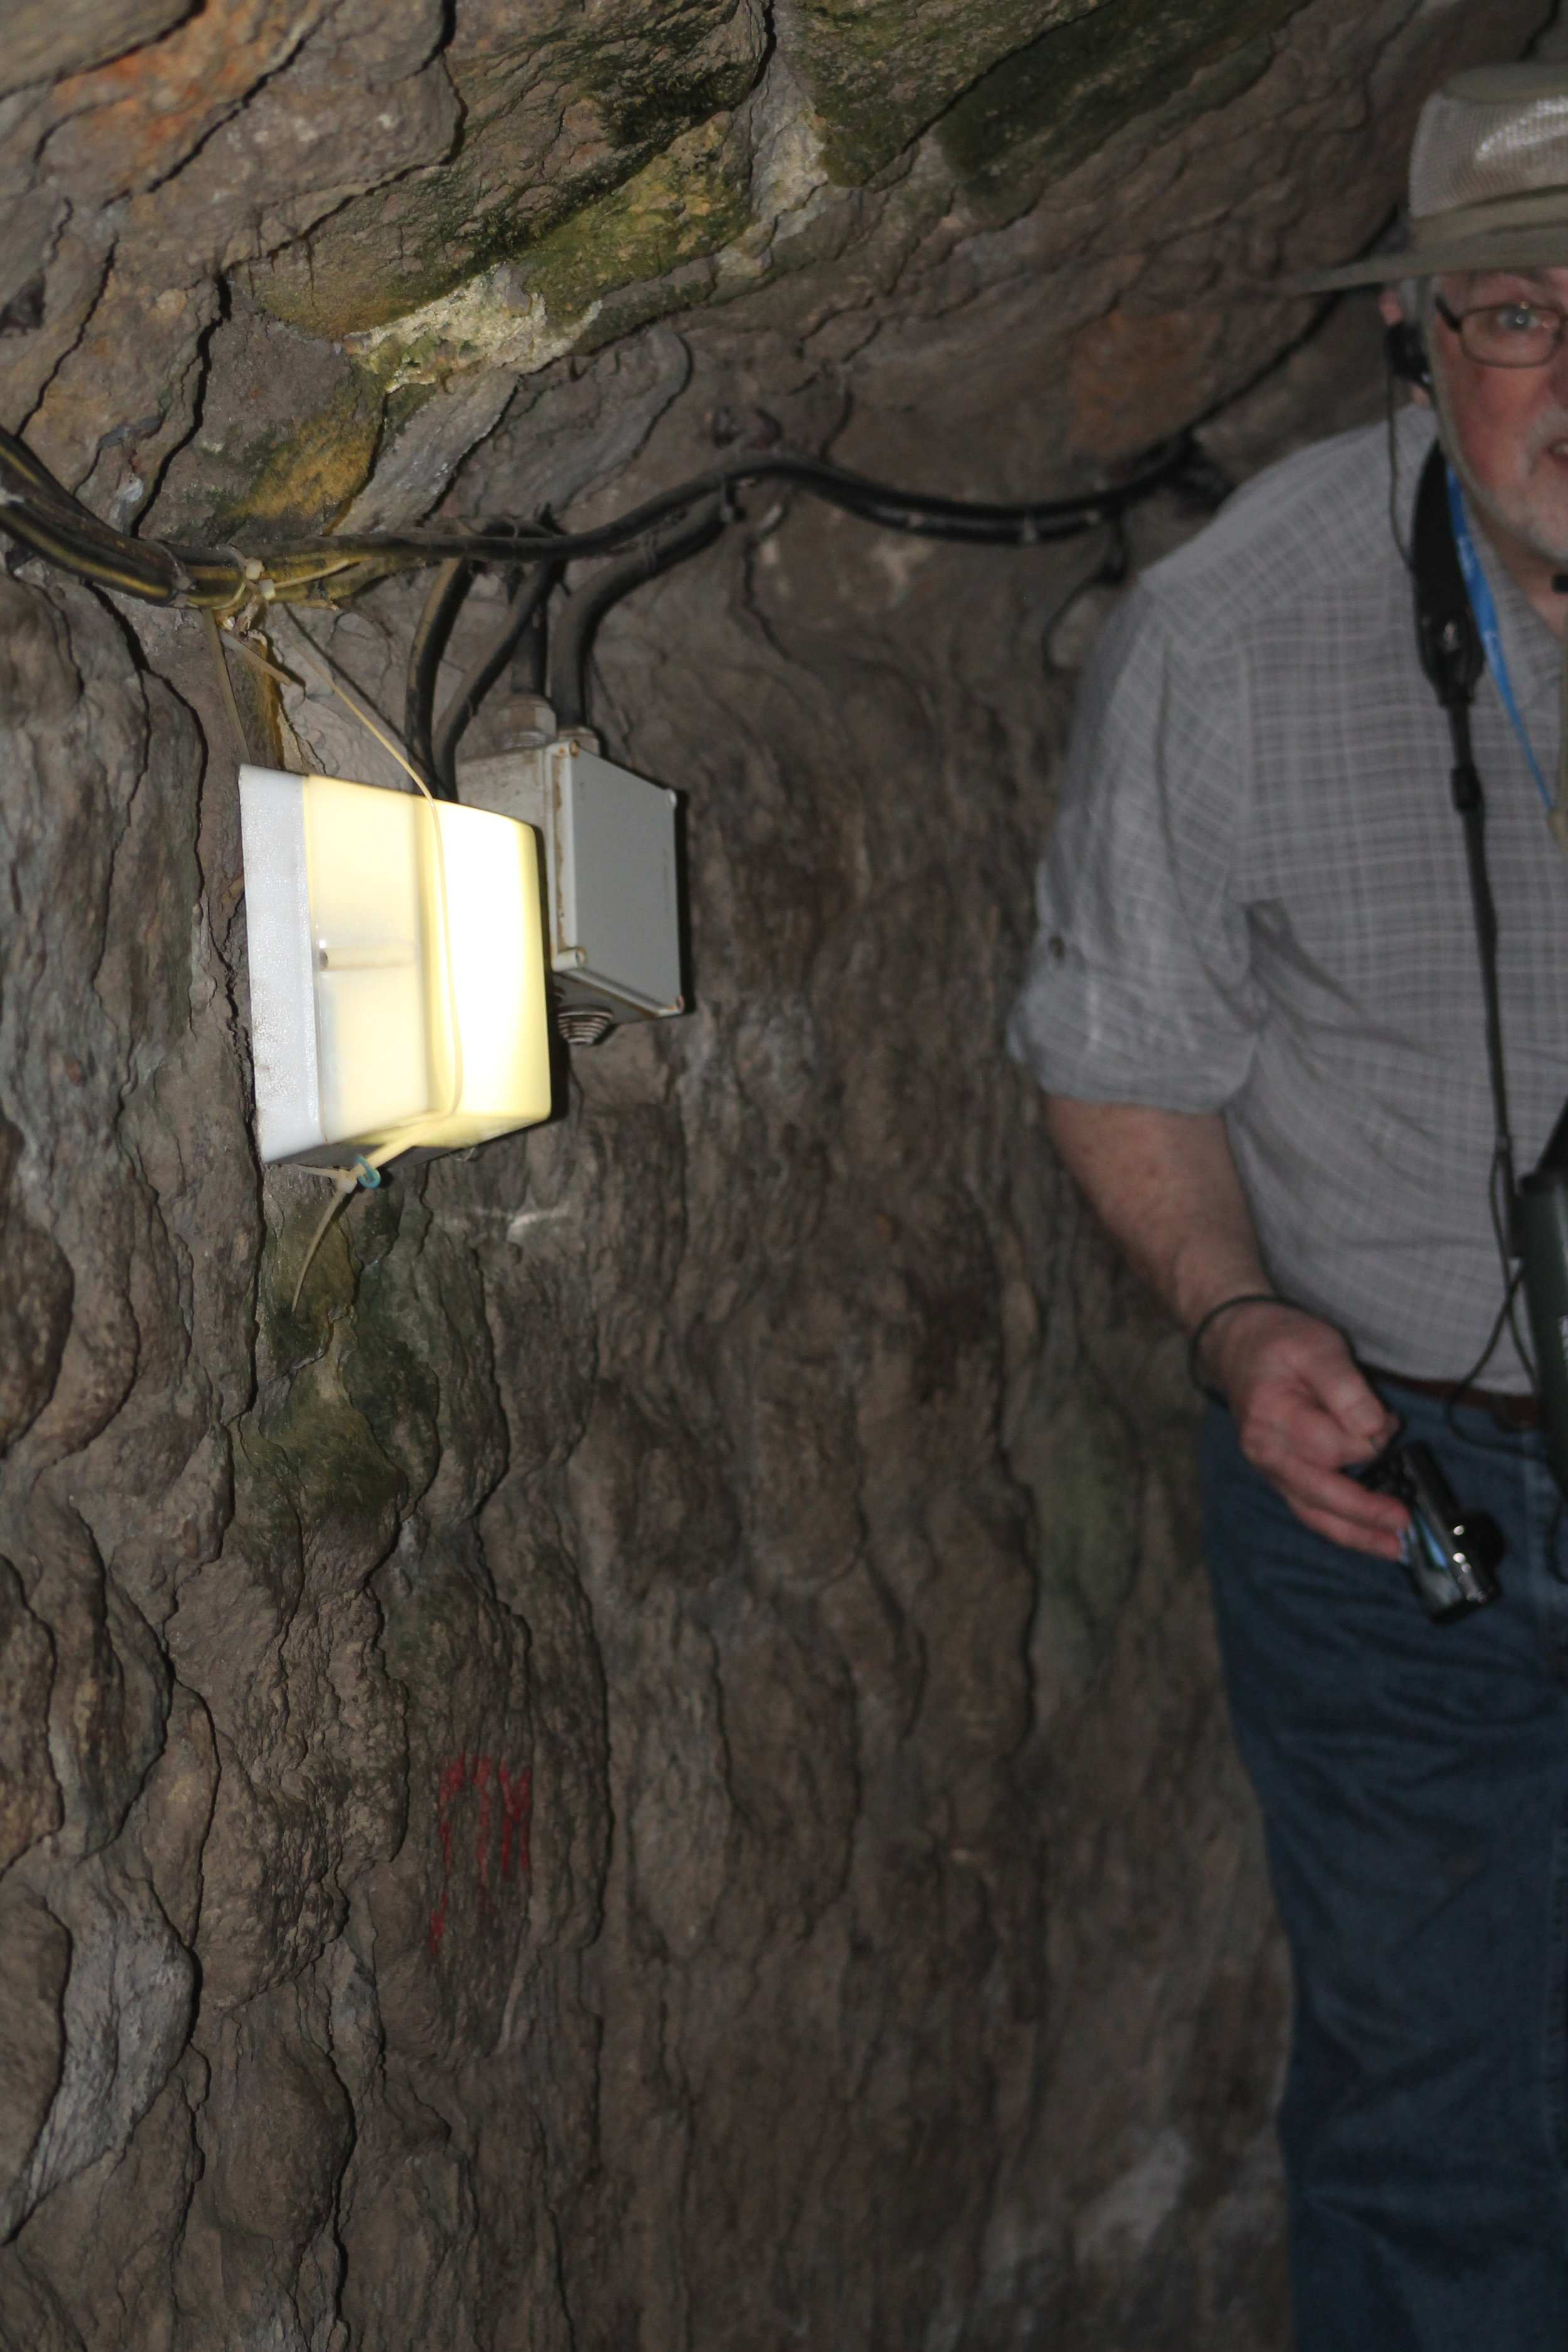 Marshall following me through the tunnels of the fortress in Akko.